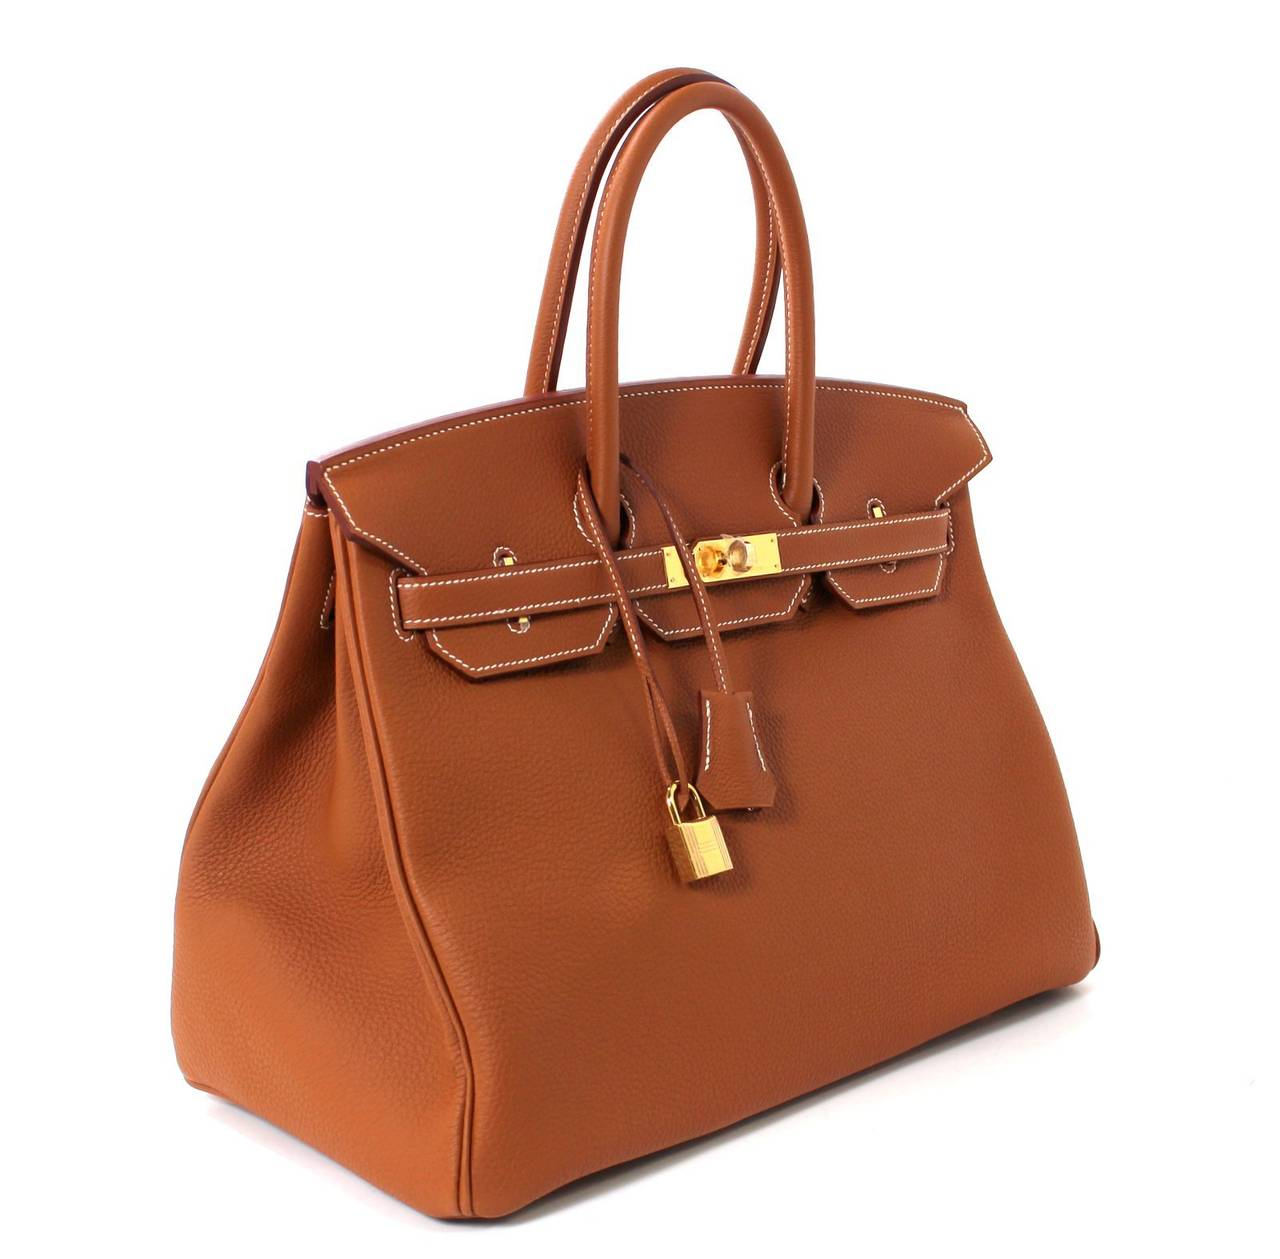 Hermes Classic Gold 35 cm Birkin Bag- Togo with GHW 3